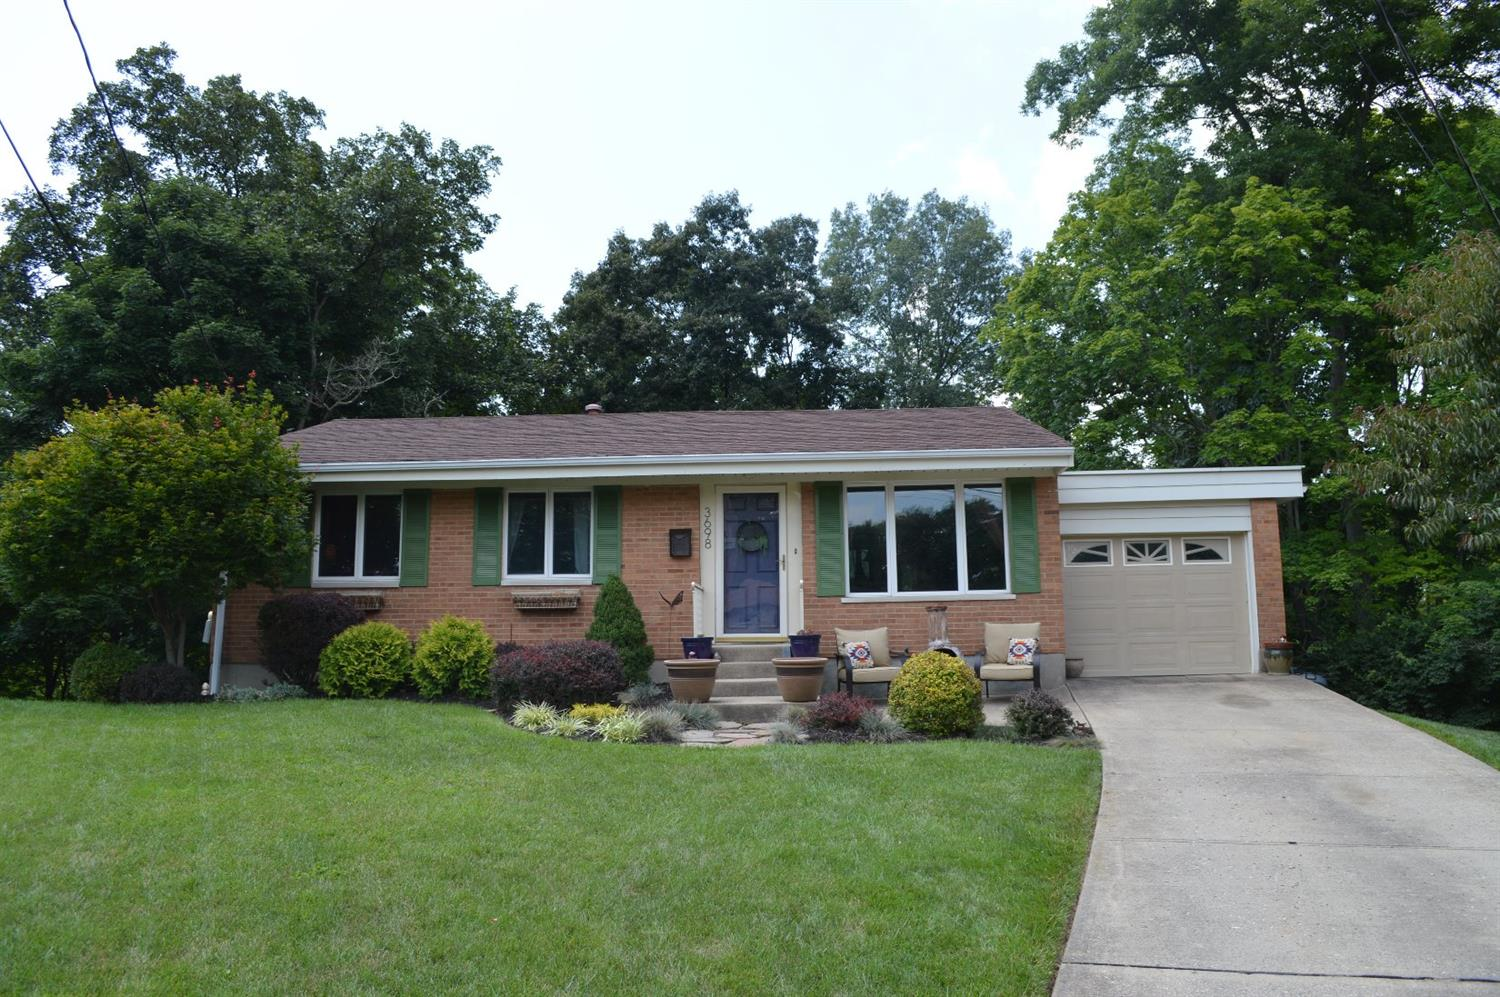 3698 Sandralin Dr White Oak, OH